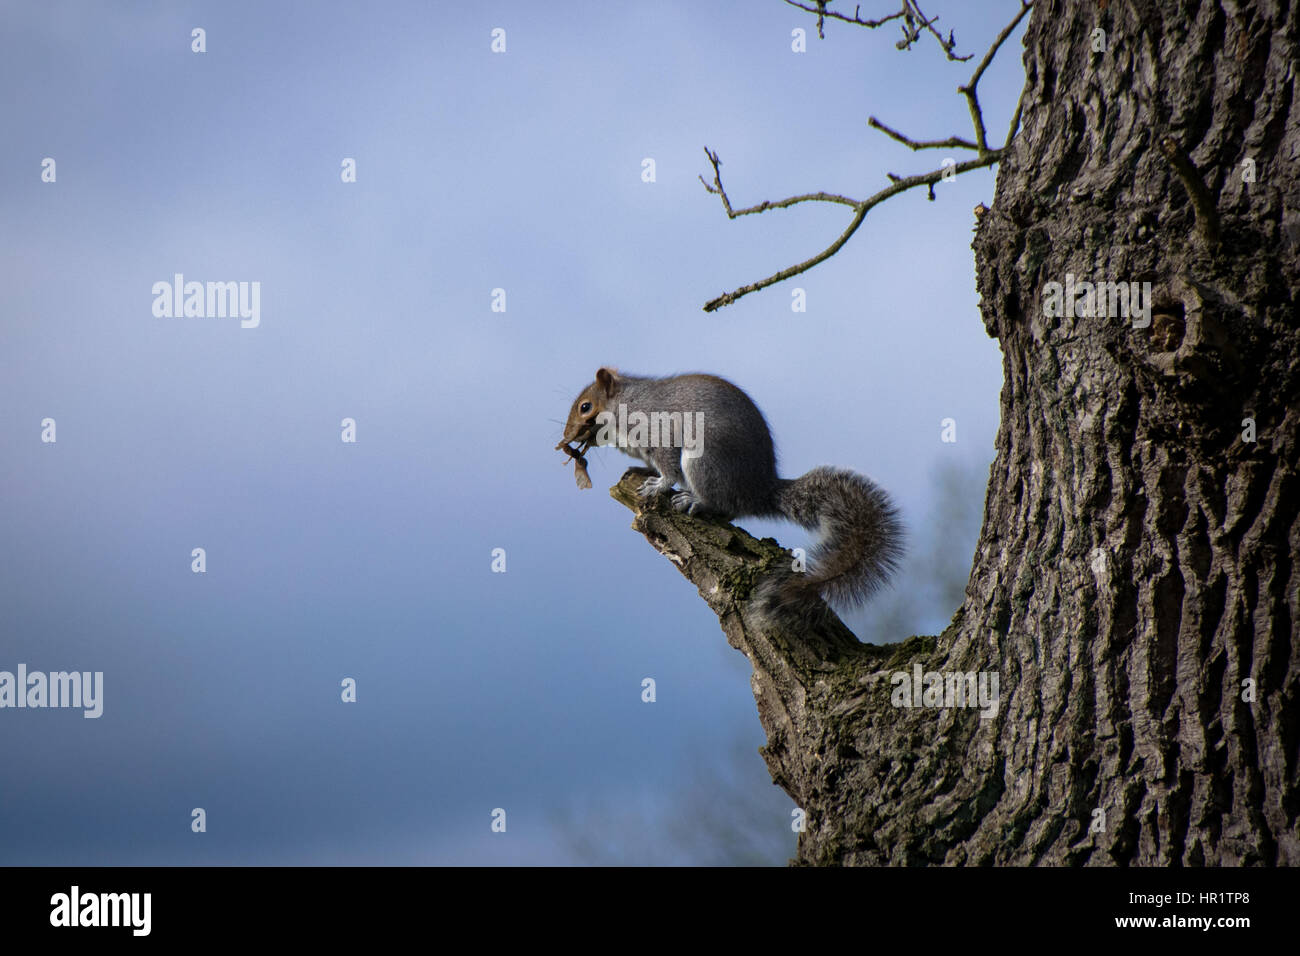 Eastern grey squirrel perched on a tree branch eating sycamore seed pods Stock Photo